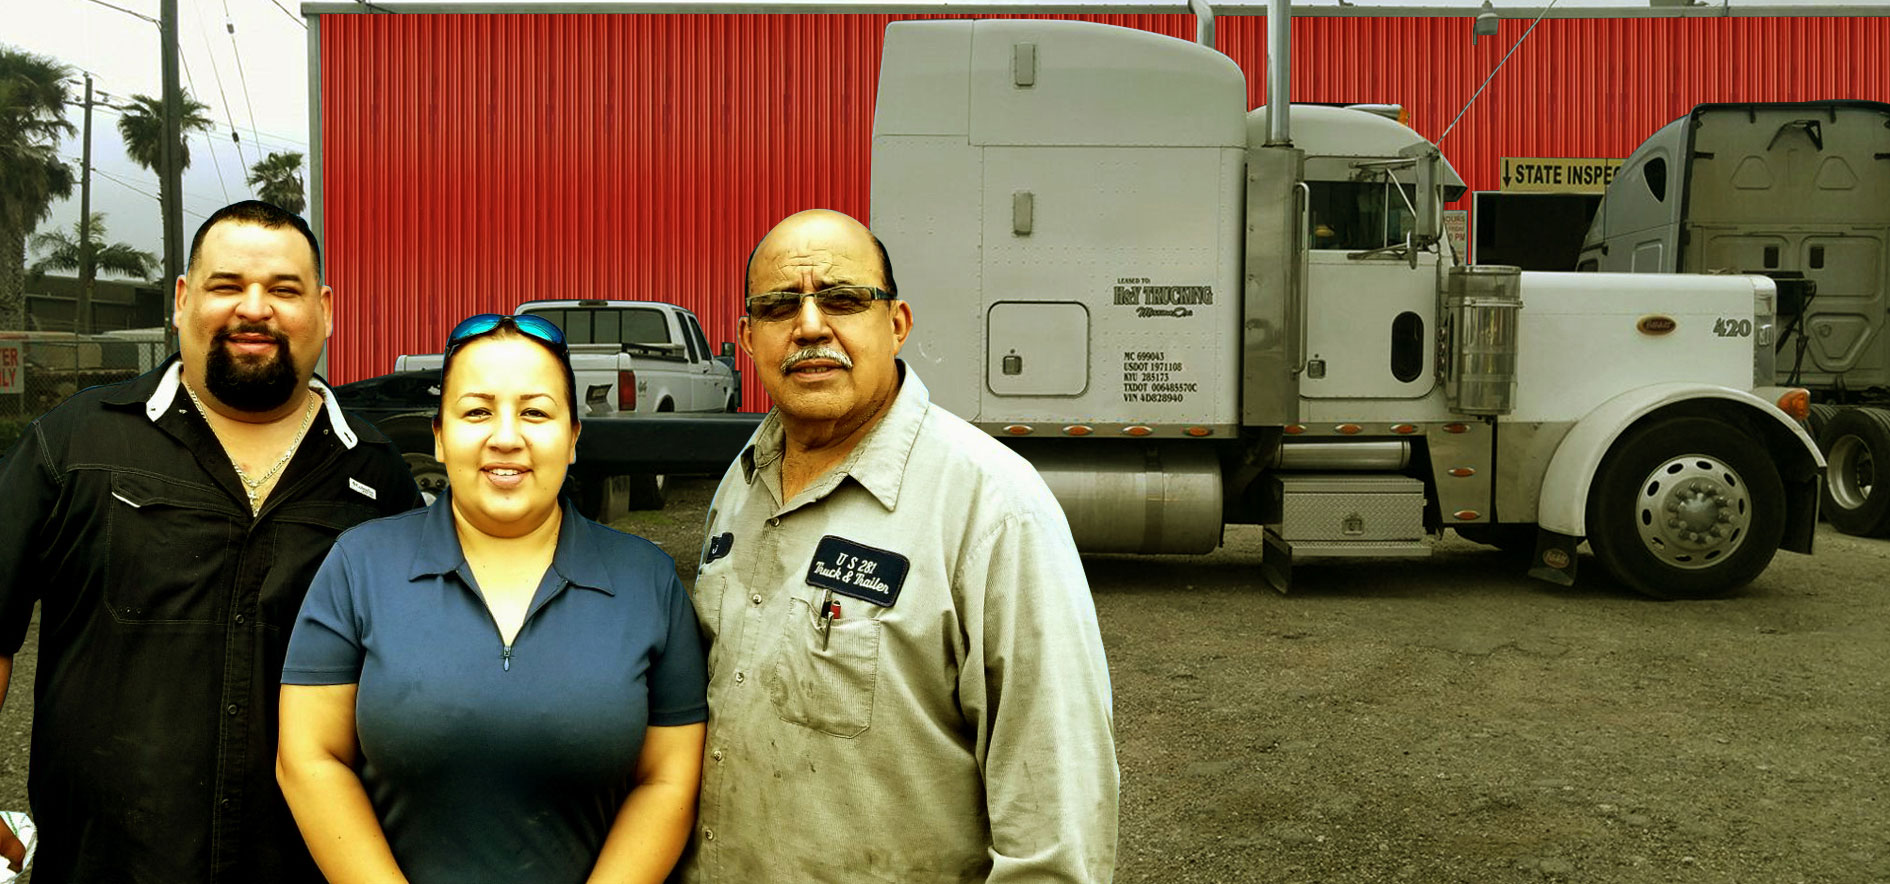 The US 281 Truck And Trailer Services LLc Team - Mario Pena,Gabriela Lopez and Jorge Lopez.